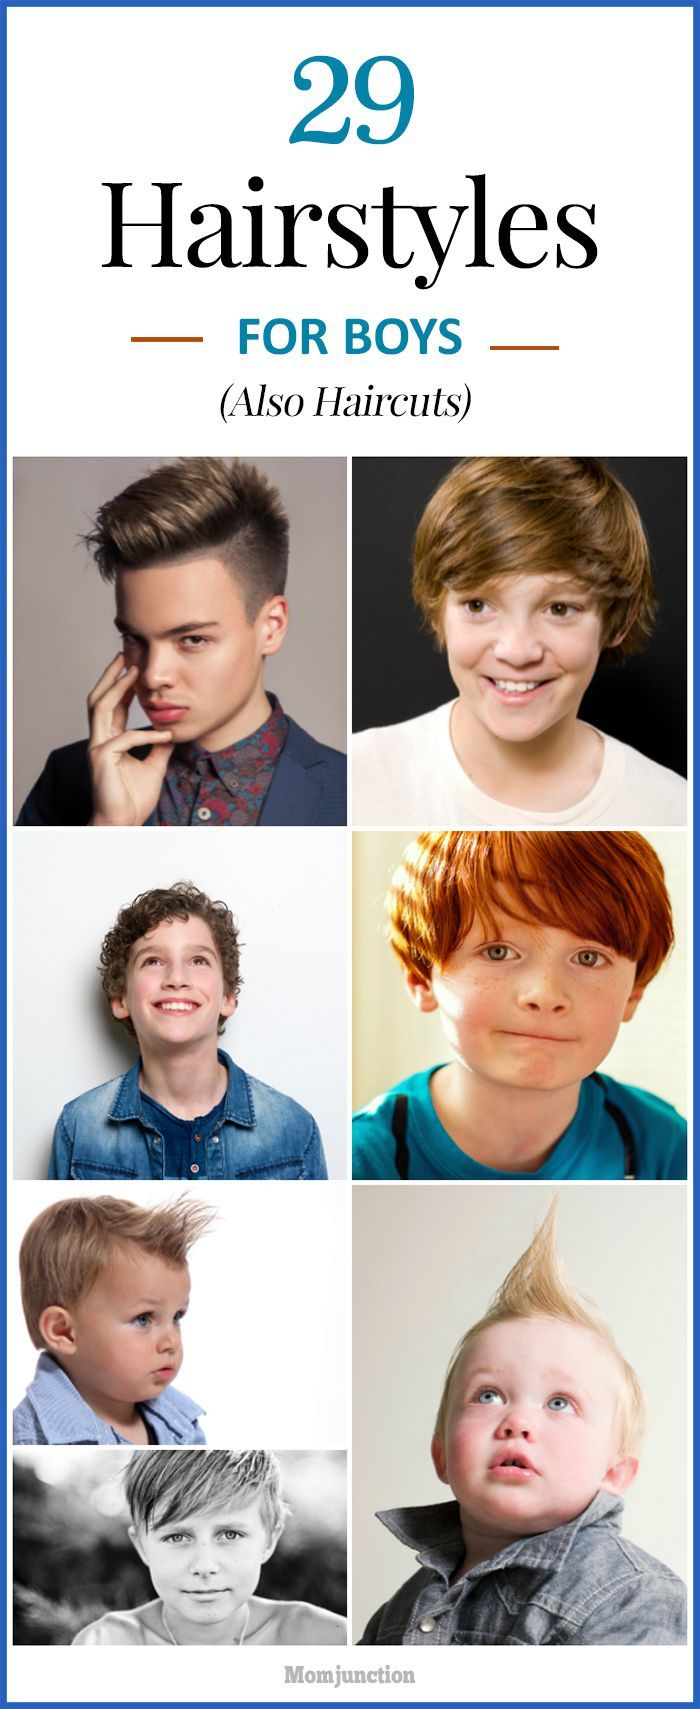 Try Different Hairstyles Awesome 31 Cute Hairstyles For Boys Also Haircuts  Haircuts Boys And Kid Kid